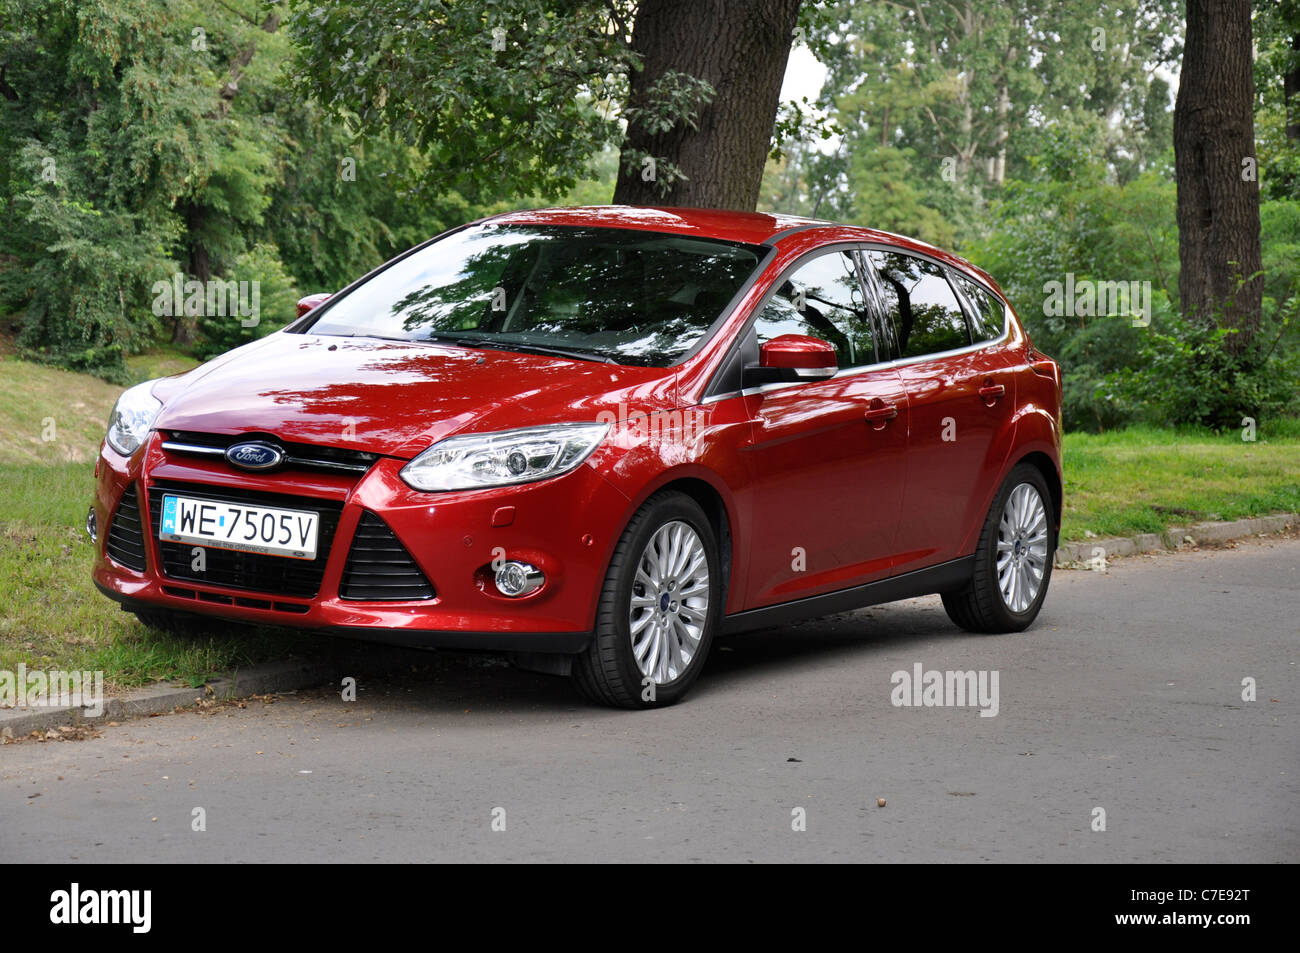 Ford focus iii 1 6 tdci my 2011 red popular german compact car segment c on park